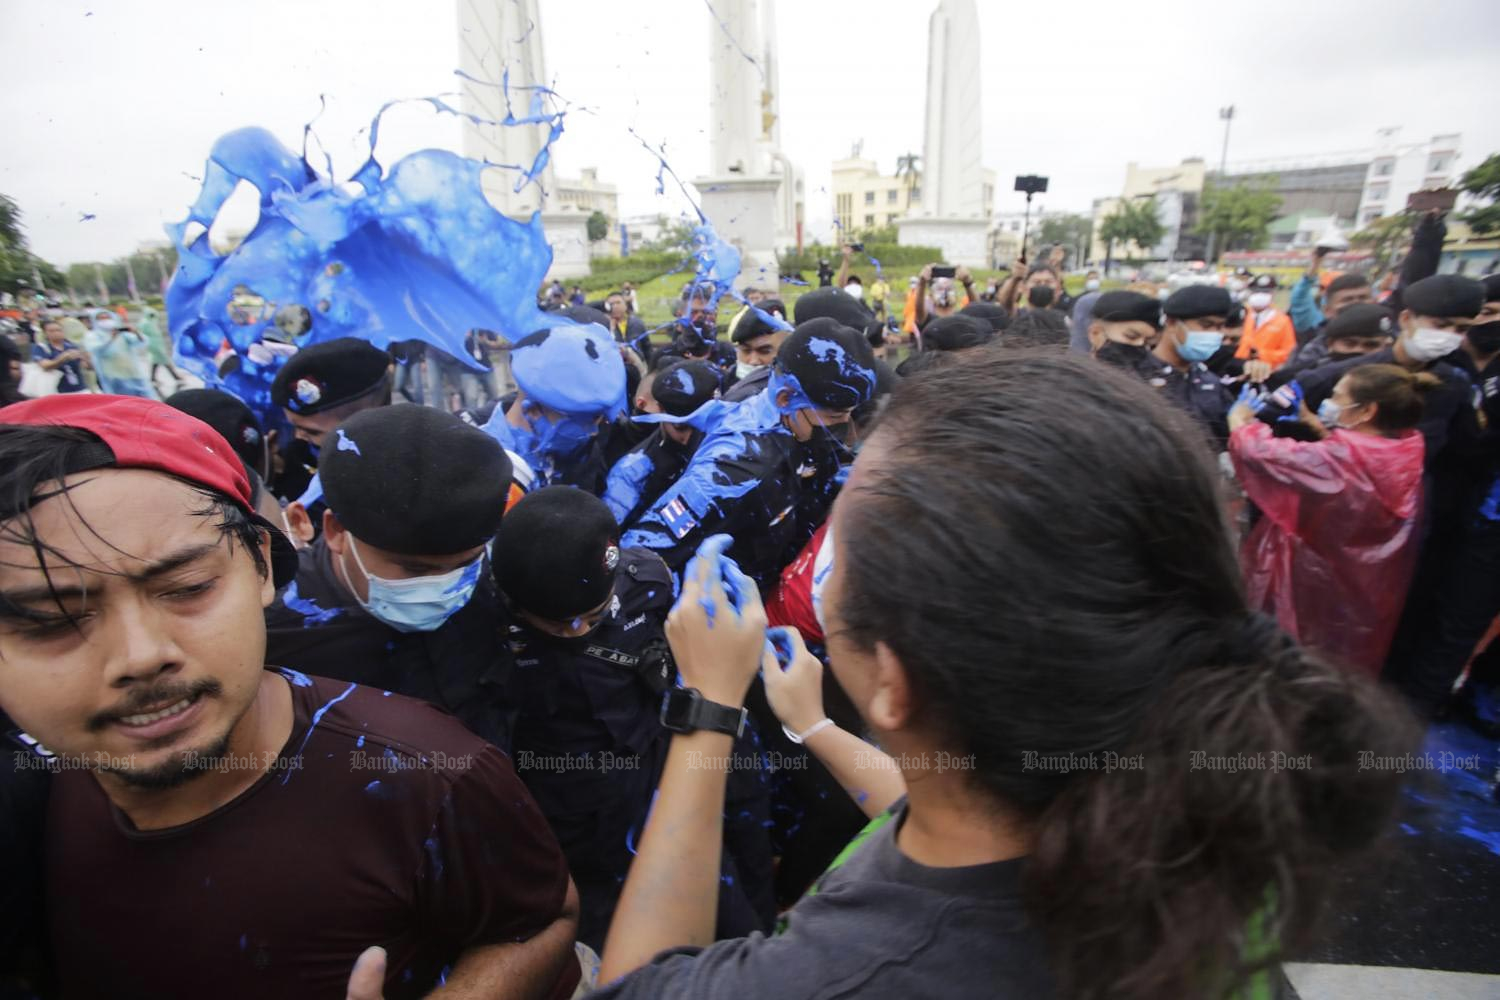 Anti-government protesters splash blue paint on security officers during a scuffle near Democracy Monument on Ratchadamnoen Avenue. Police ordered the protesters to leave as the road was being prepared for Tuesday's royal motorcade. (Photo by Pornprom Satrabhaya)